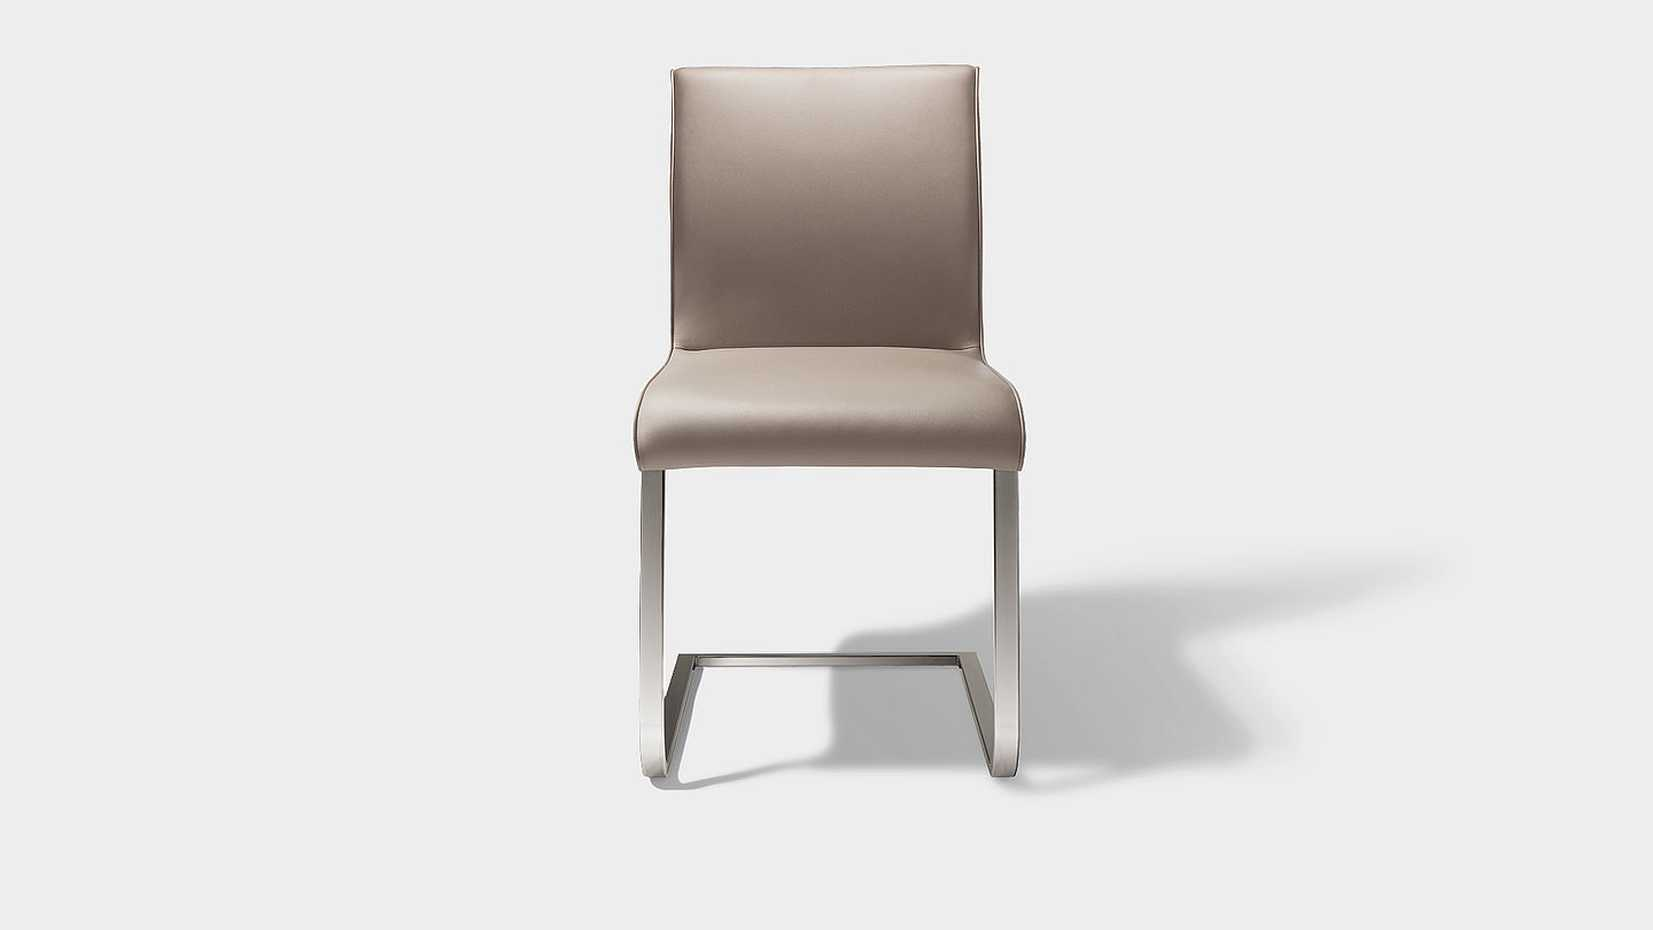 Magnum Cantilever Chair  by Team 7 product image 4